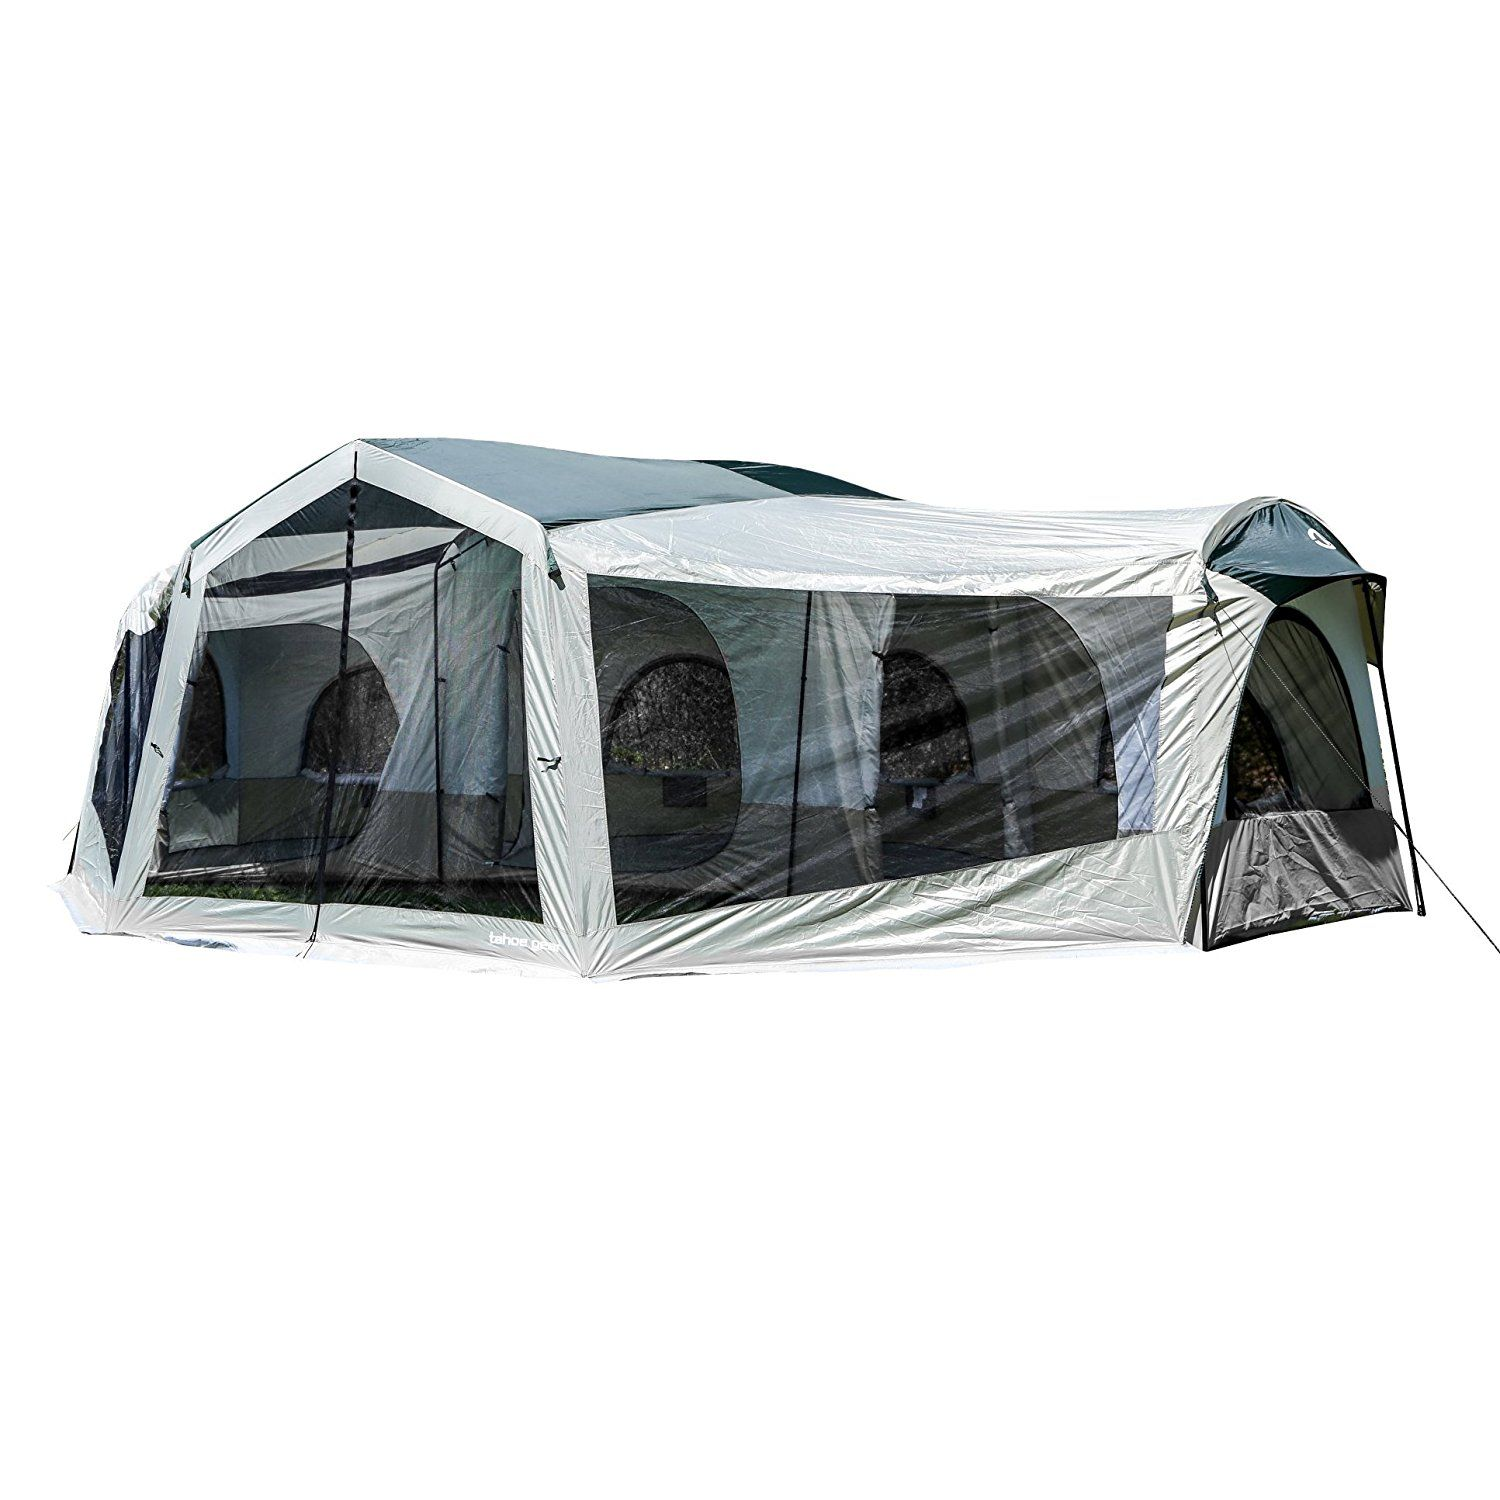 tent pop up tent tents for sale c&ing tents coleman tents c&ing gear c&ing equipment c&ing  sc 1 st  Pinterest & tent pop up tent tents for sale camping tents coleman tents ...